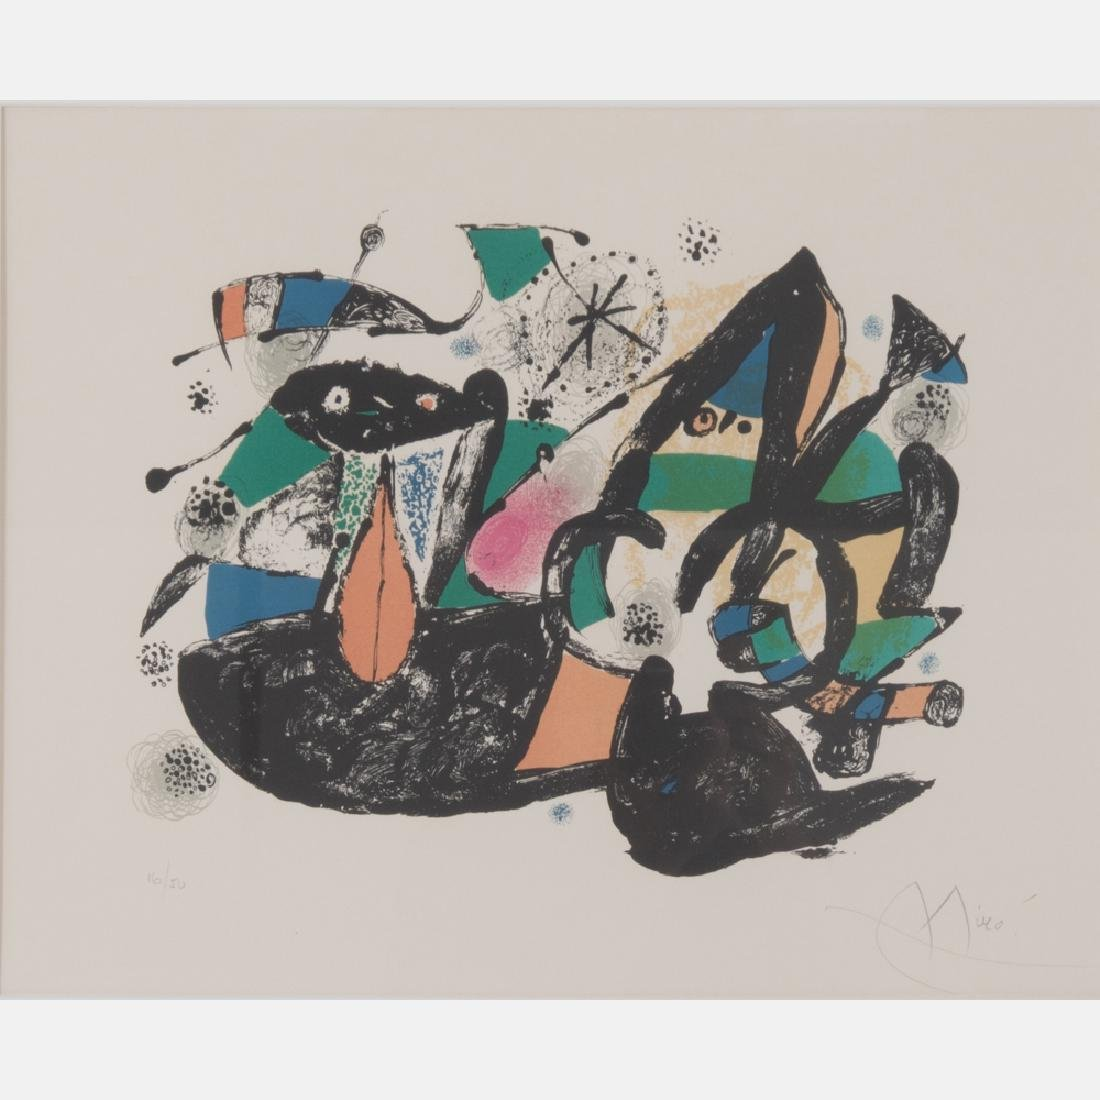 Joan Miro (1893-1983) Seicles, Lithograph,